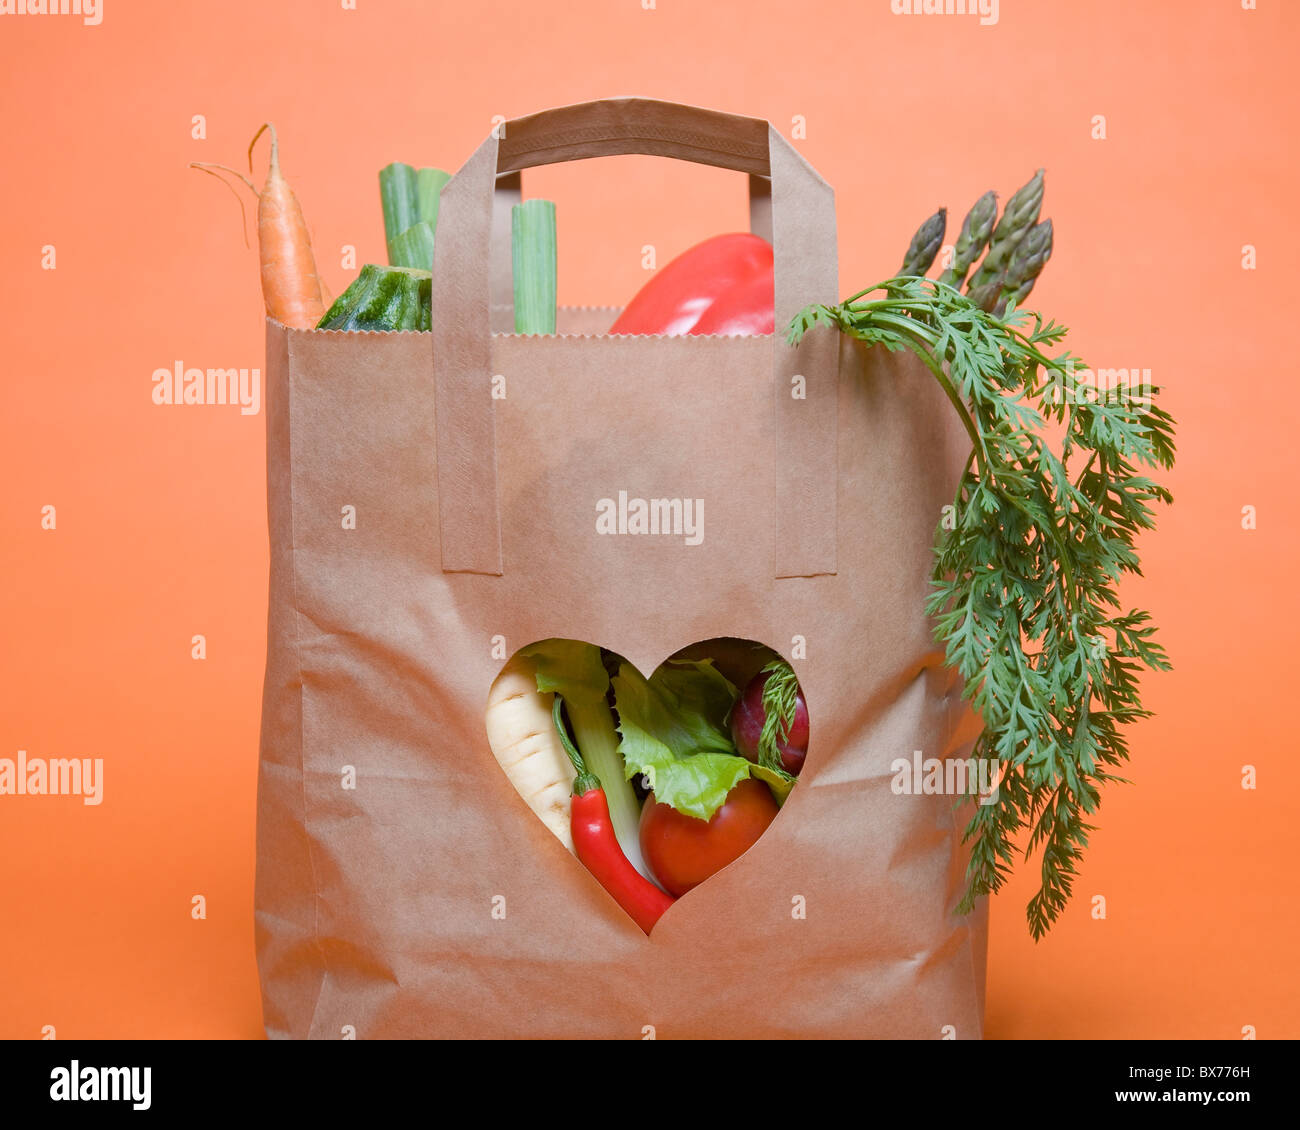 Vegetables in bag with heart symbol Stock Photo